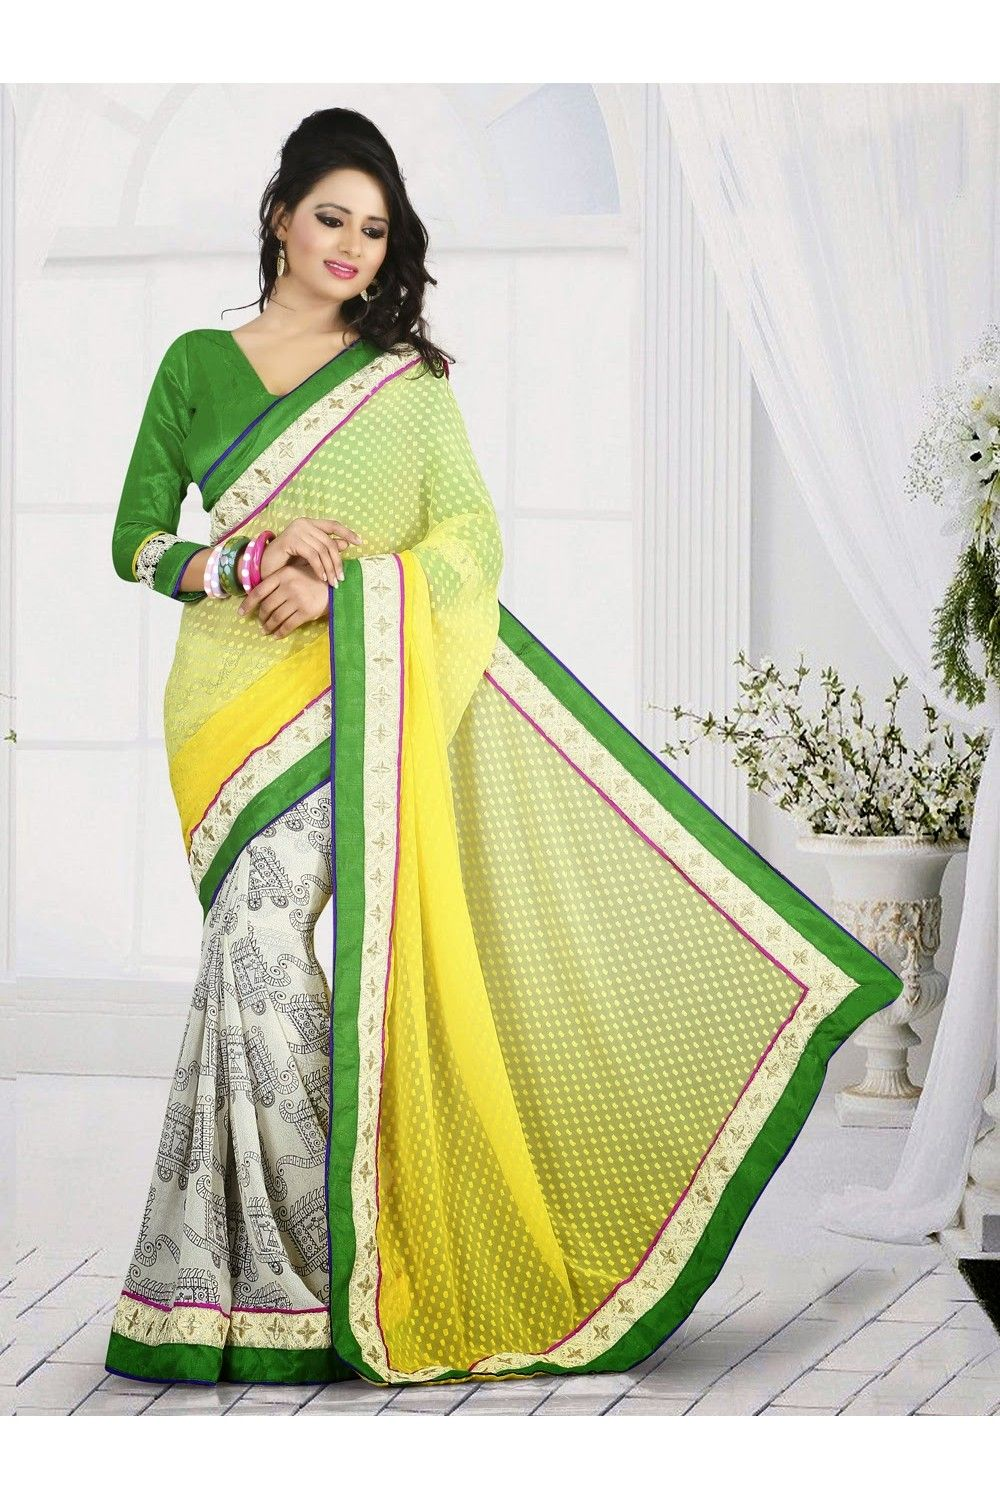 Captivative Off White u Yellow Embroidered Saree You Will Look